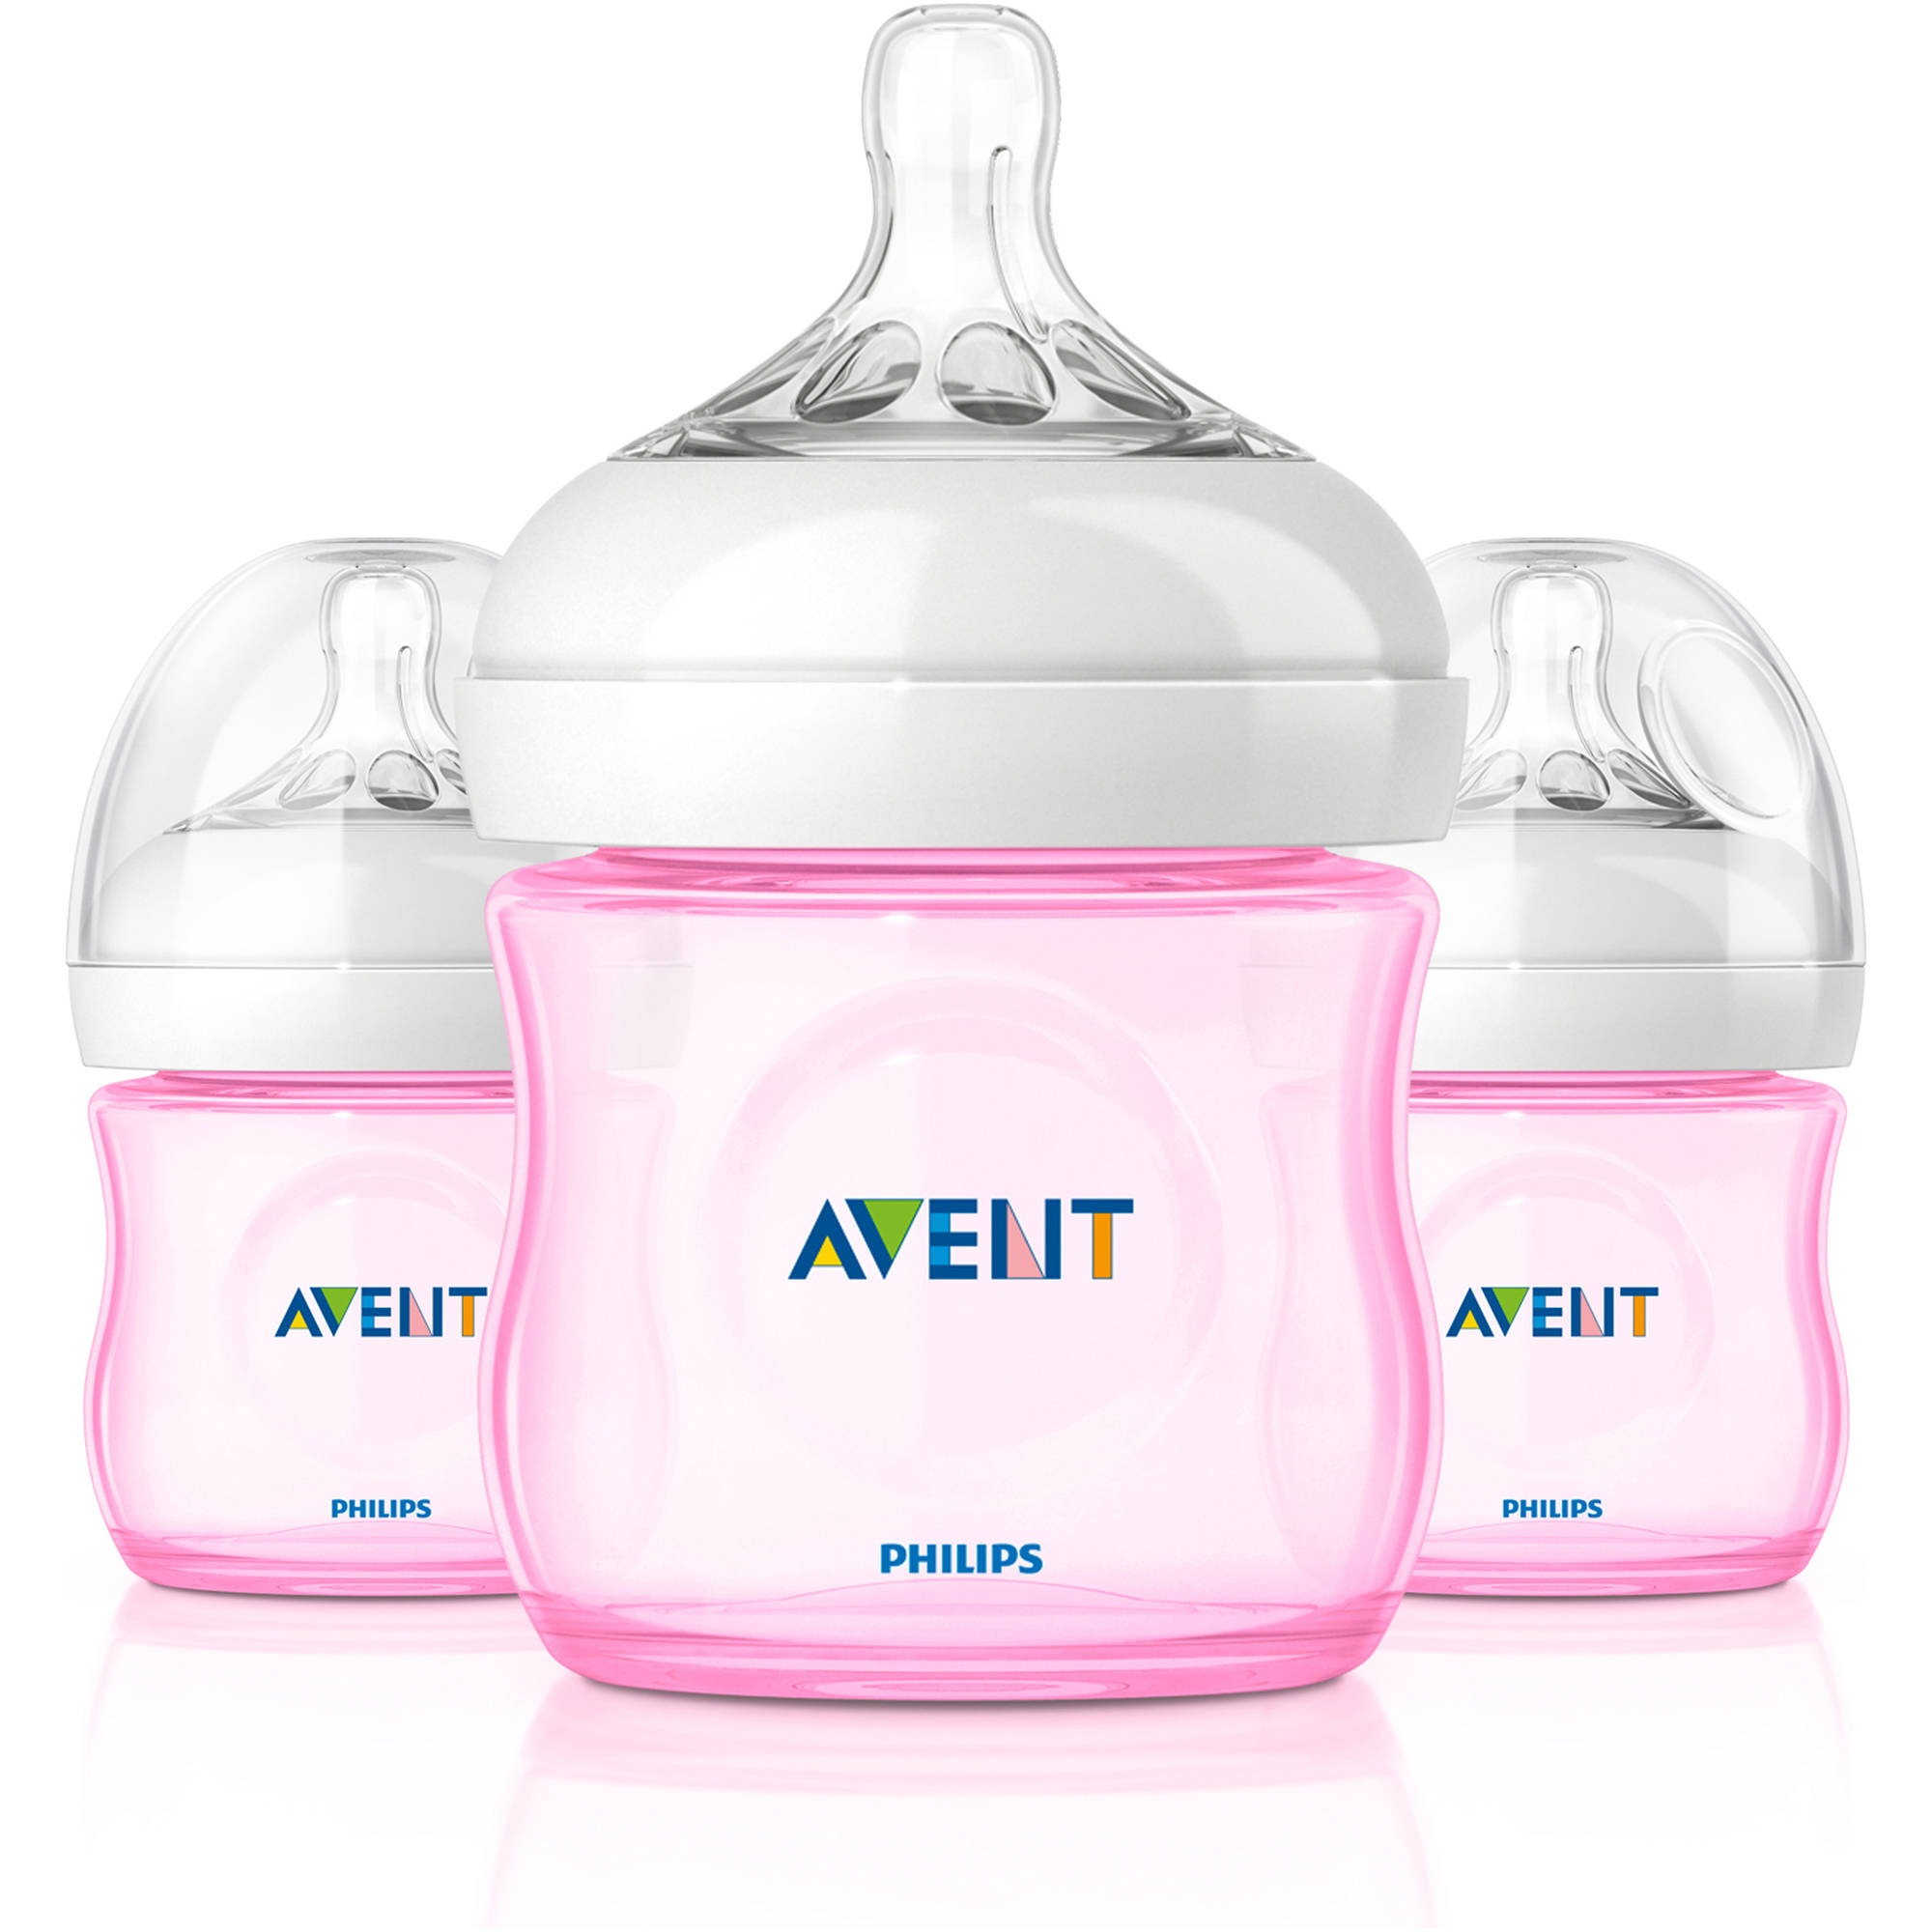 Philips Avent BPA Free Natural Pink Baby Bottles, 4 Ounce, 3 Pack